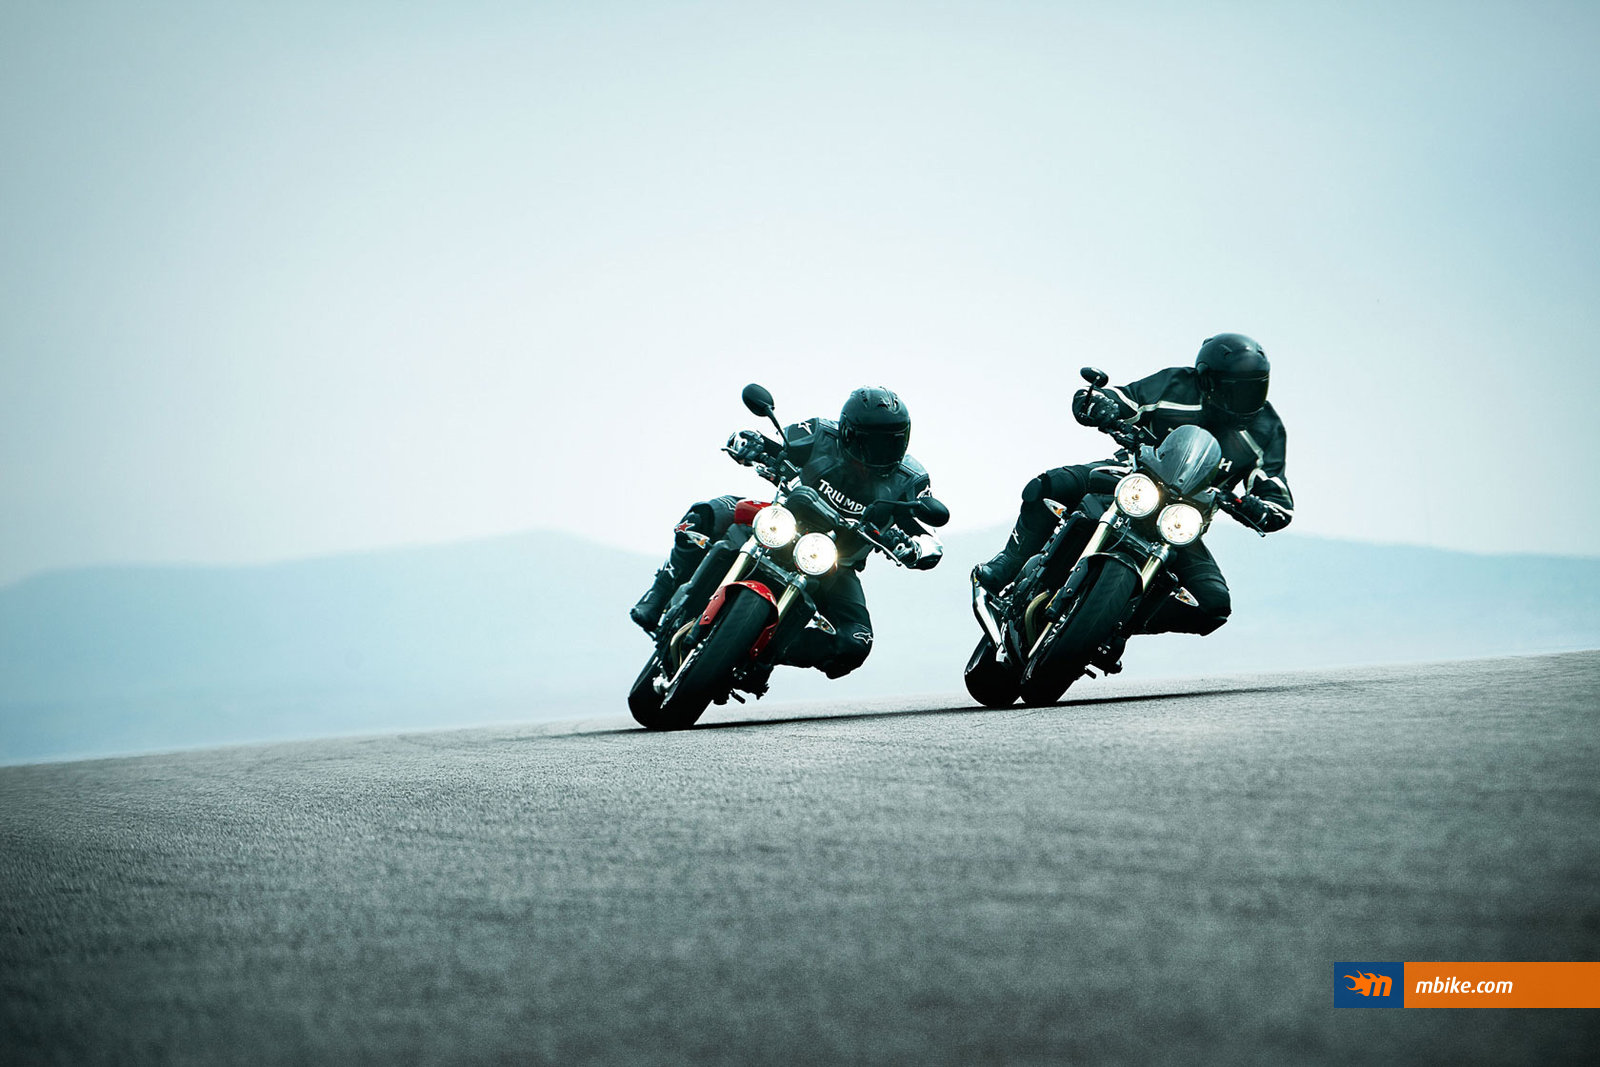 2010 Triumph Street Triple 675 Wallpaper Mbikecom